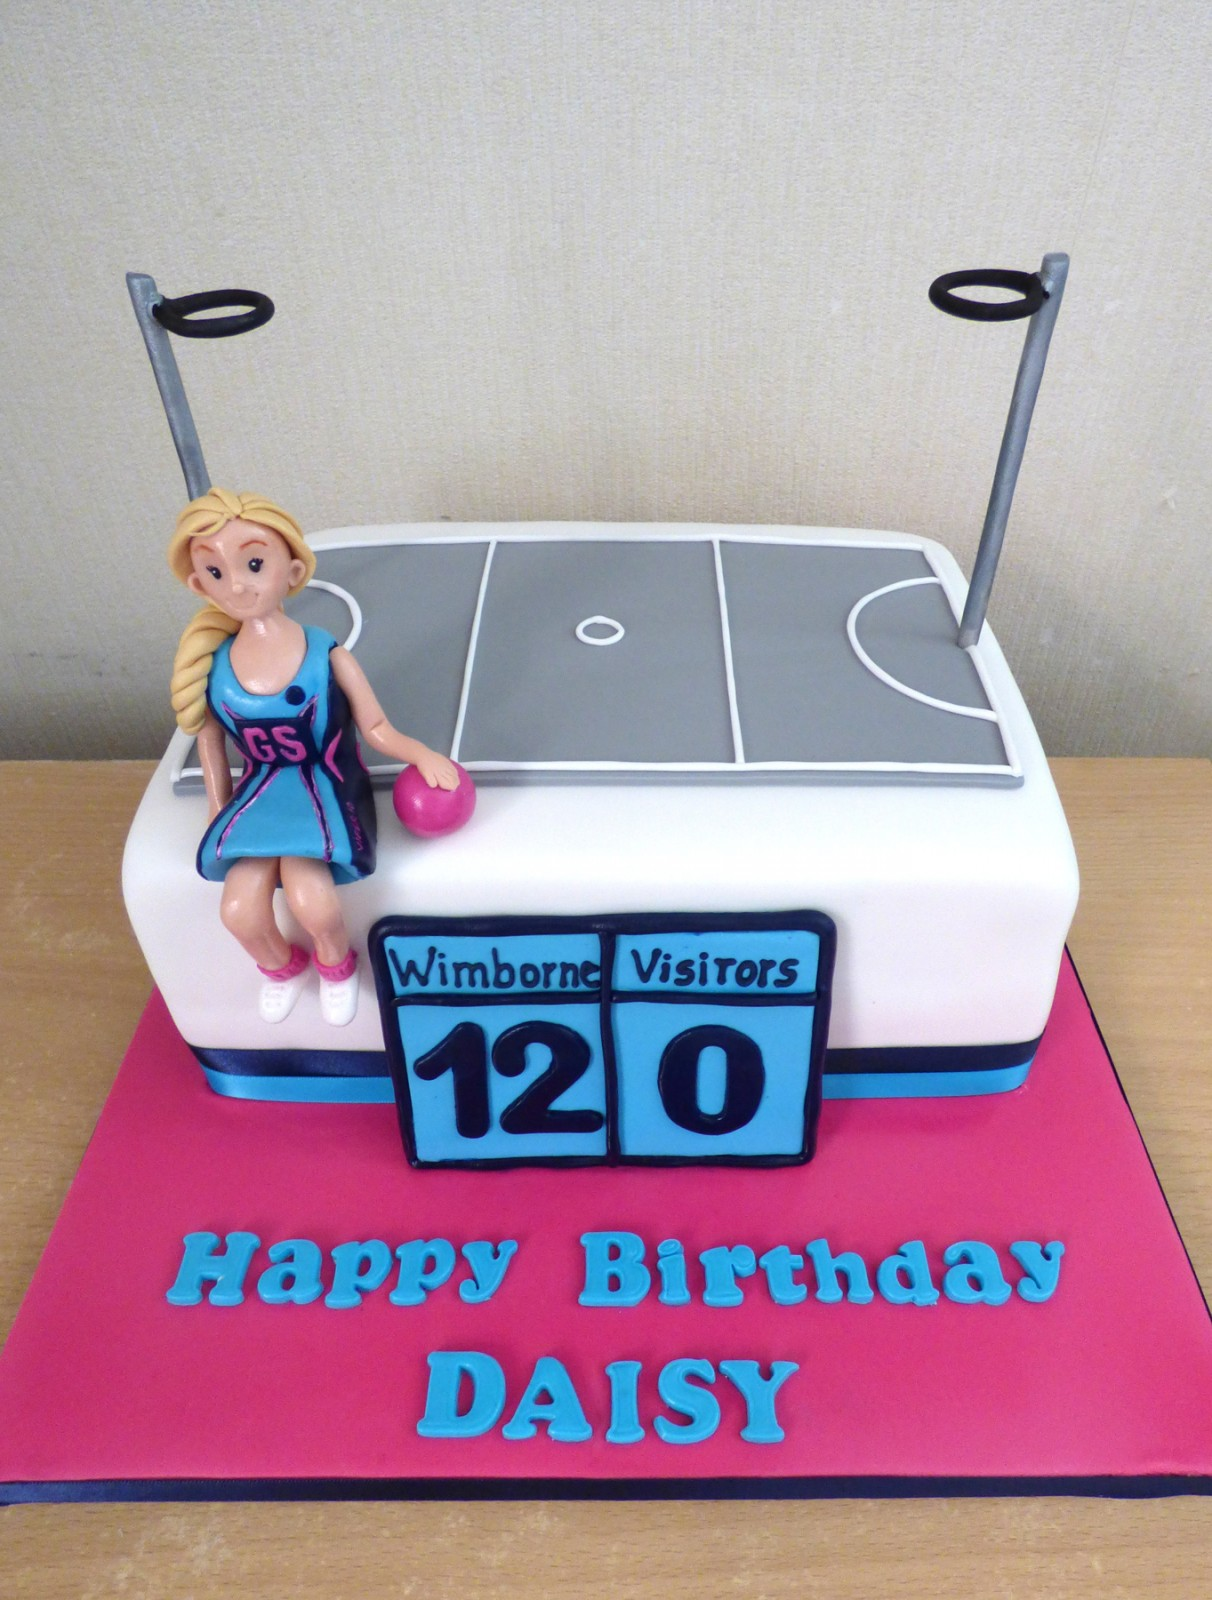 Awesome Wimborne Netball Club Themed Birthday Cake Susies Cakes Funny Birthday Cards Online Alyptdamsfinfo